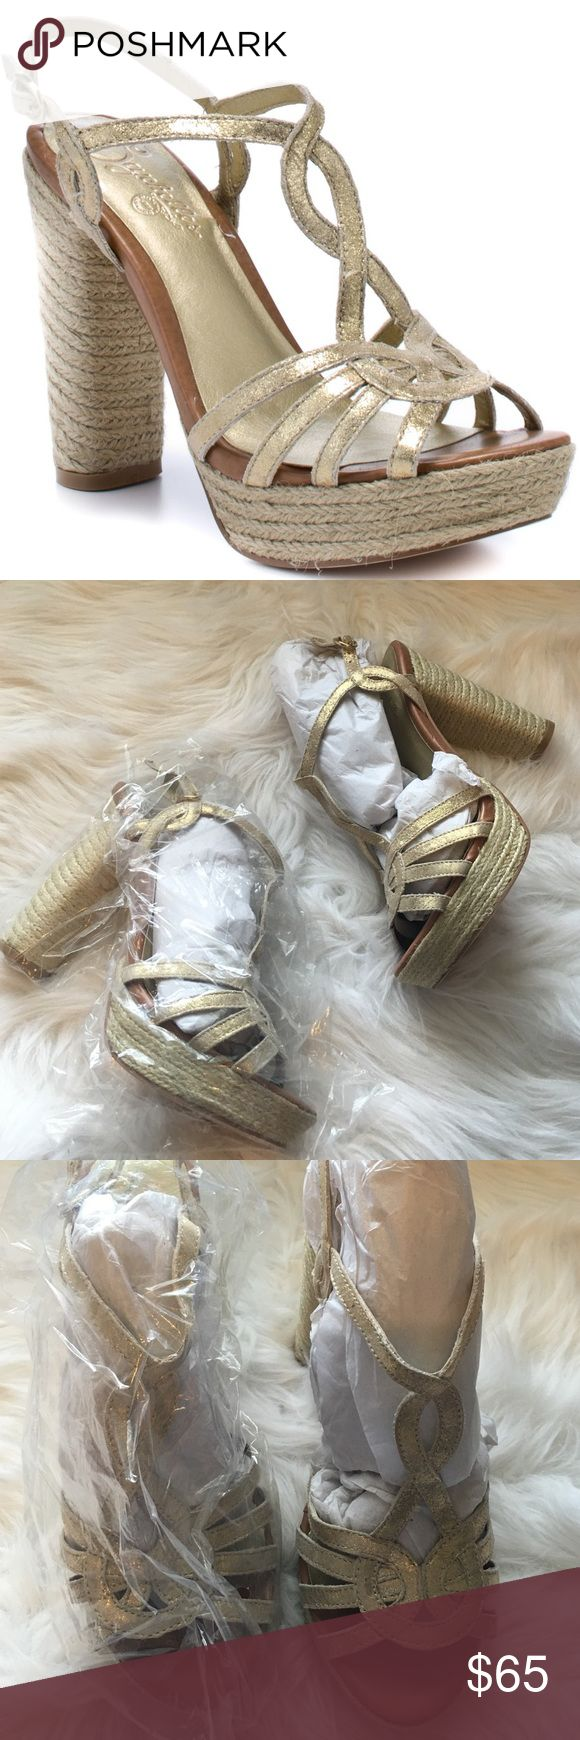 Seychelles Gold Metallic Espadrille Heels So chic and perfect for summertime! Brand new with packaging as shown. Size 9. No trades!! 06171680gwf Seychelles Shoes Heels